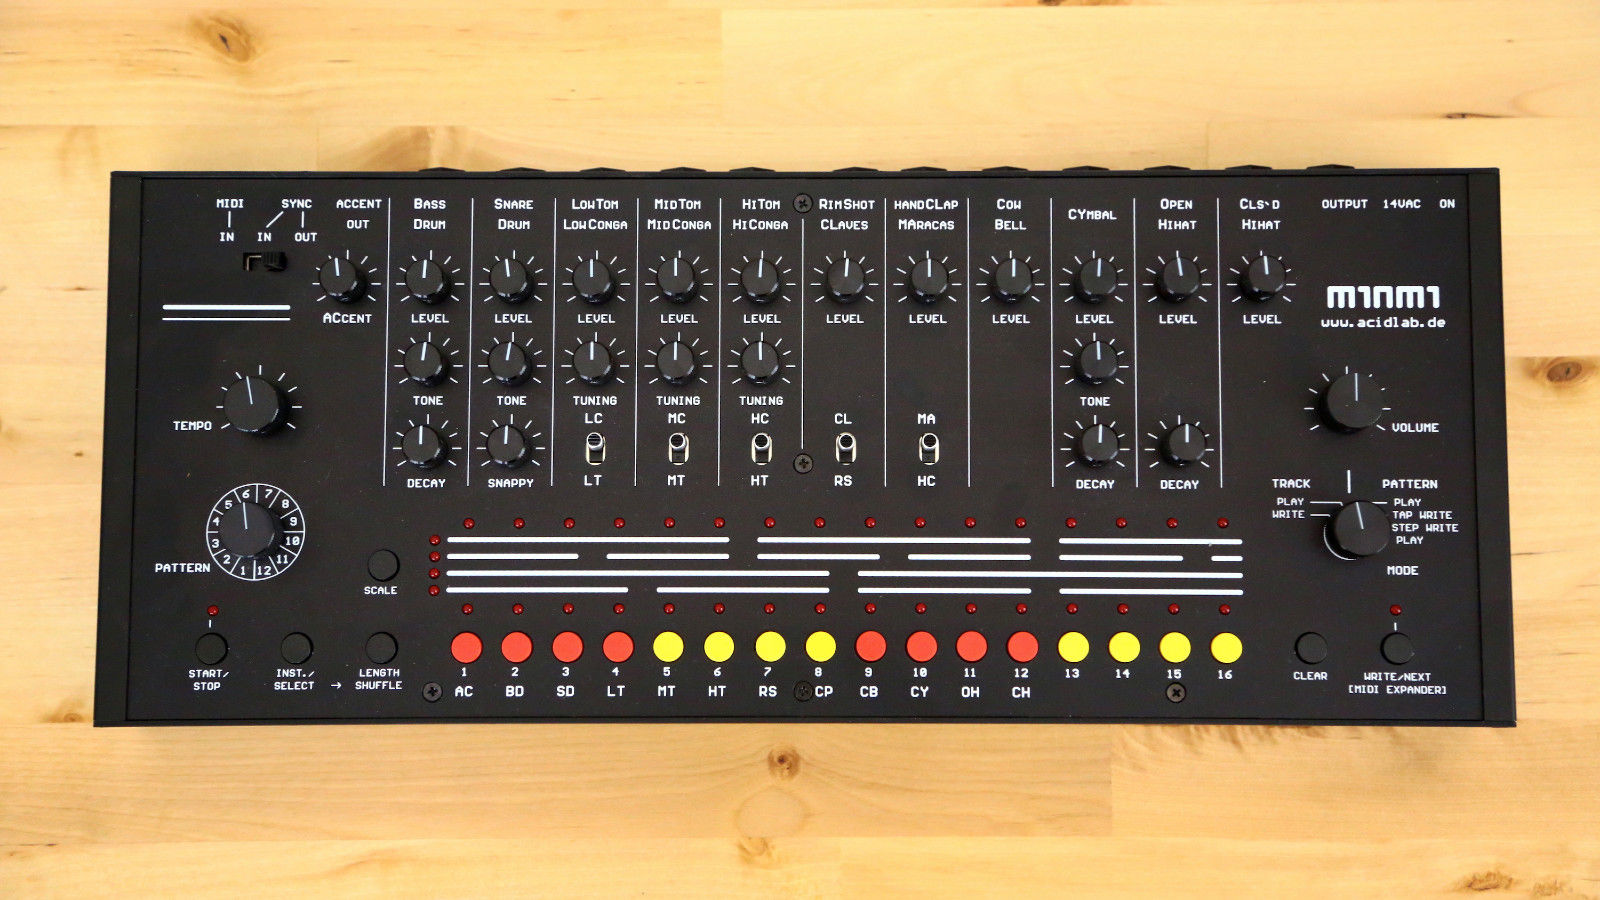 matrixsynth acidlab miami analog drum machine. Black Bedroom Furniture Sets. Home Design Ideas